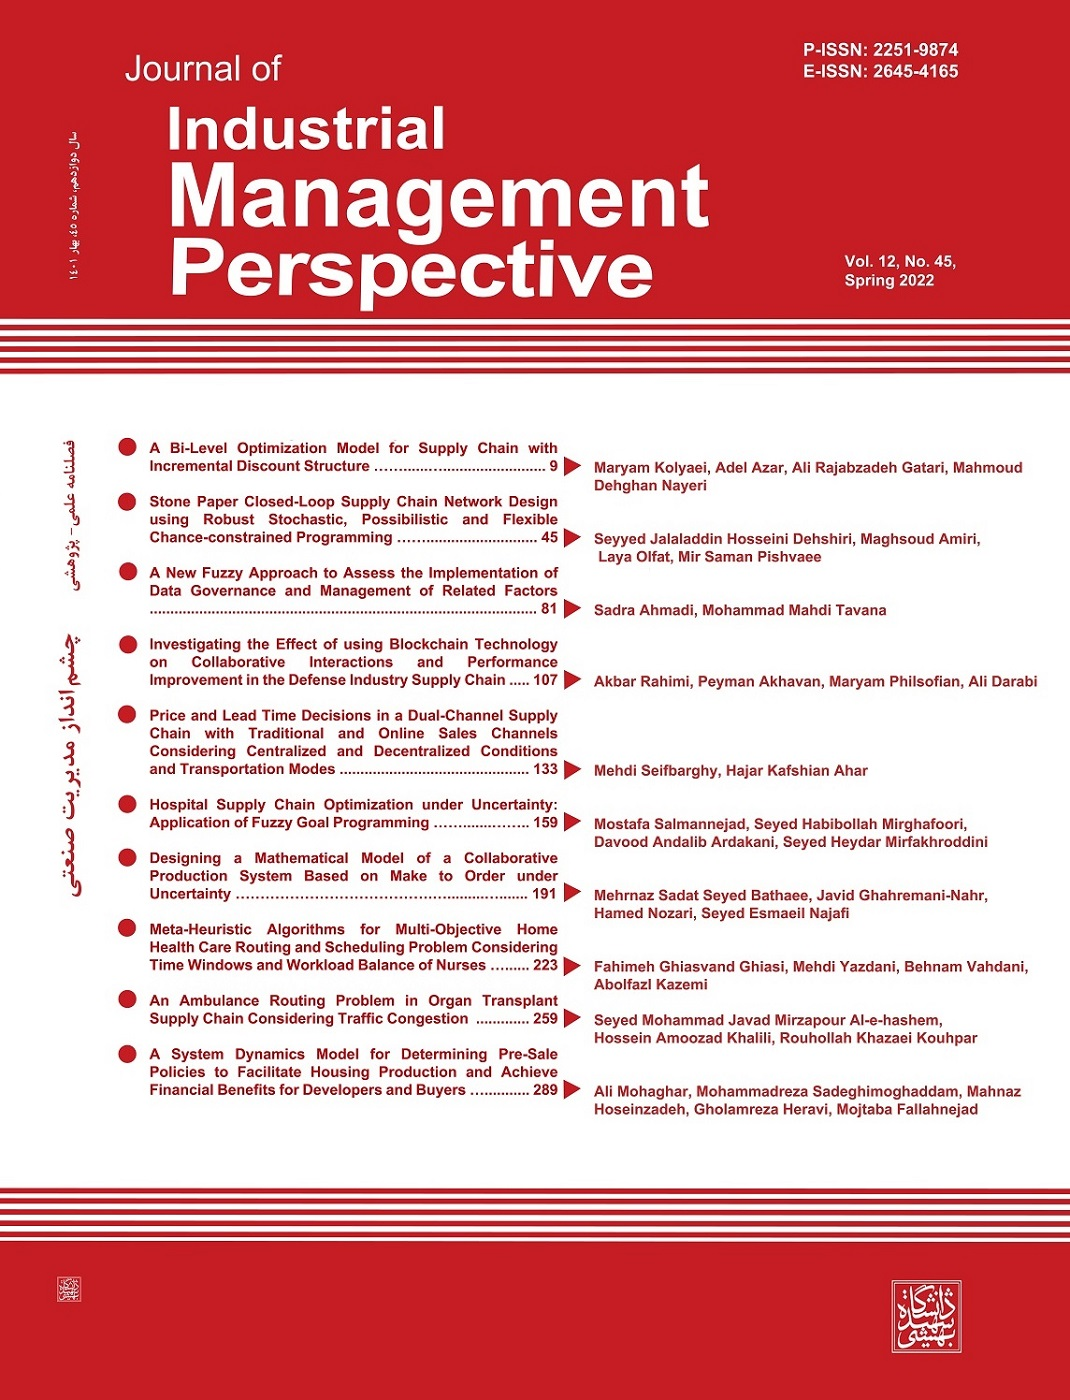 Journal of Industrial Management Perspective